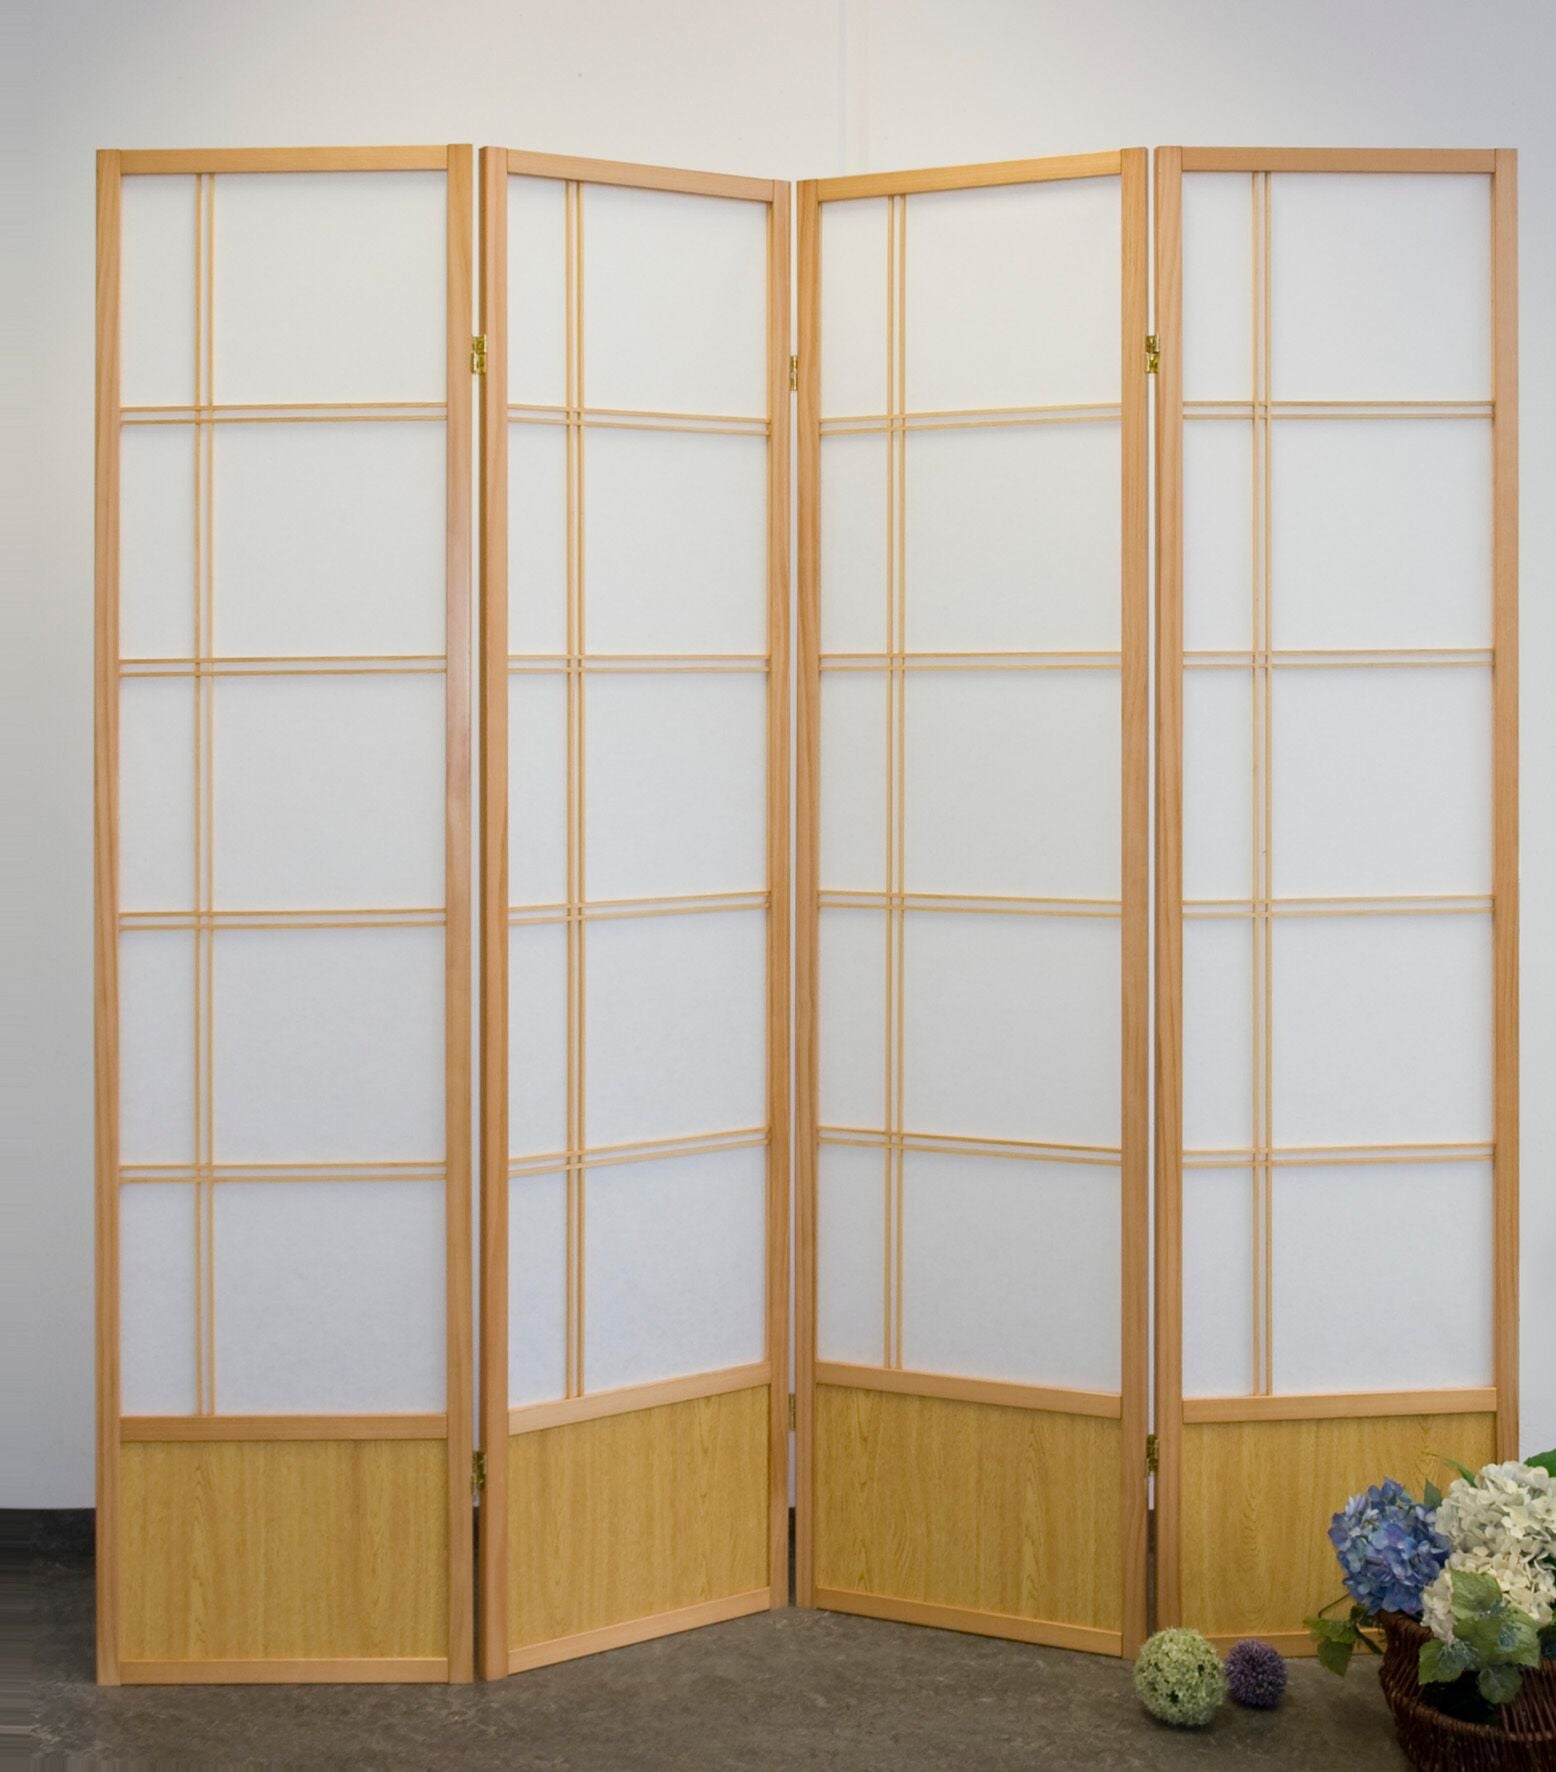 tranquility and espresso divider from shutter hayneedle wooden dividers room pin screen in com natural